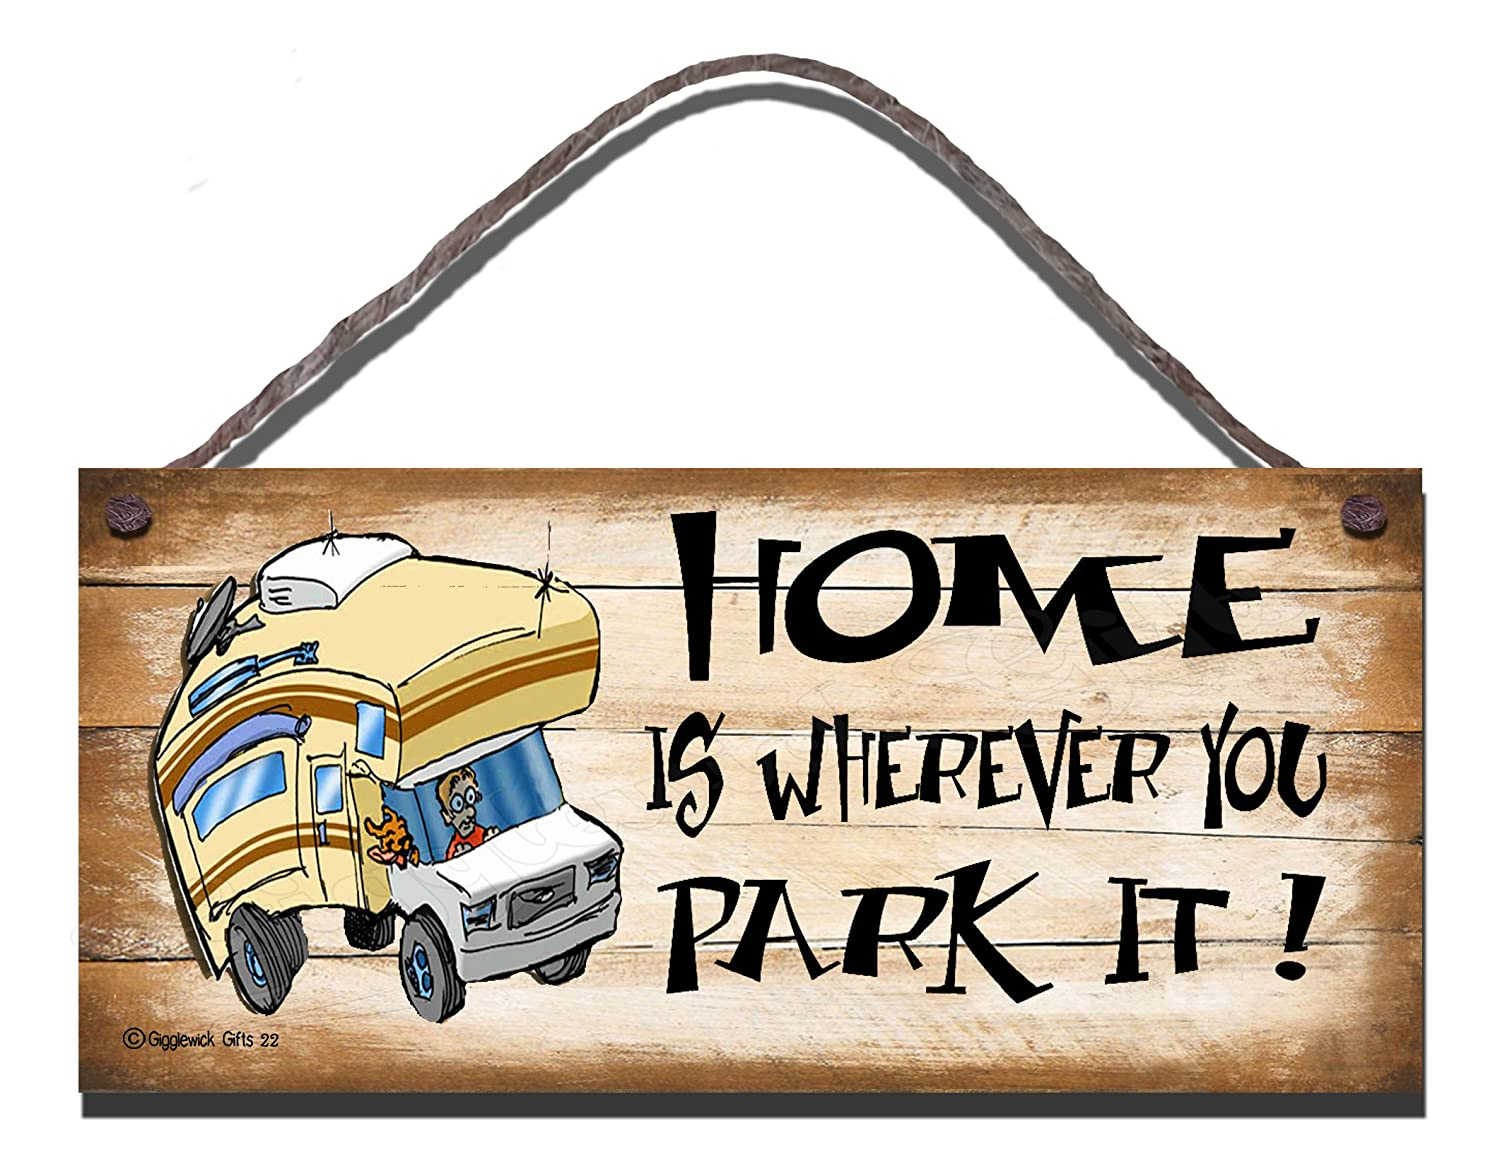 Birthday Occasion Shabby Chic Wooden Funny Sign Wall Plaque Home Is Wherever You Park It 22